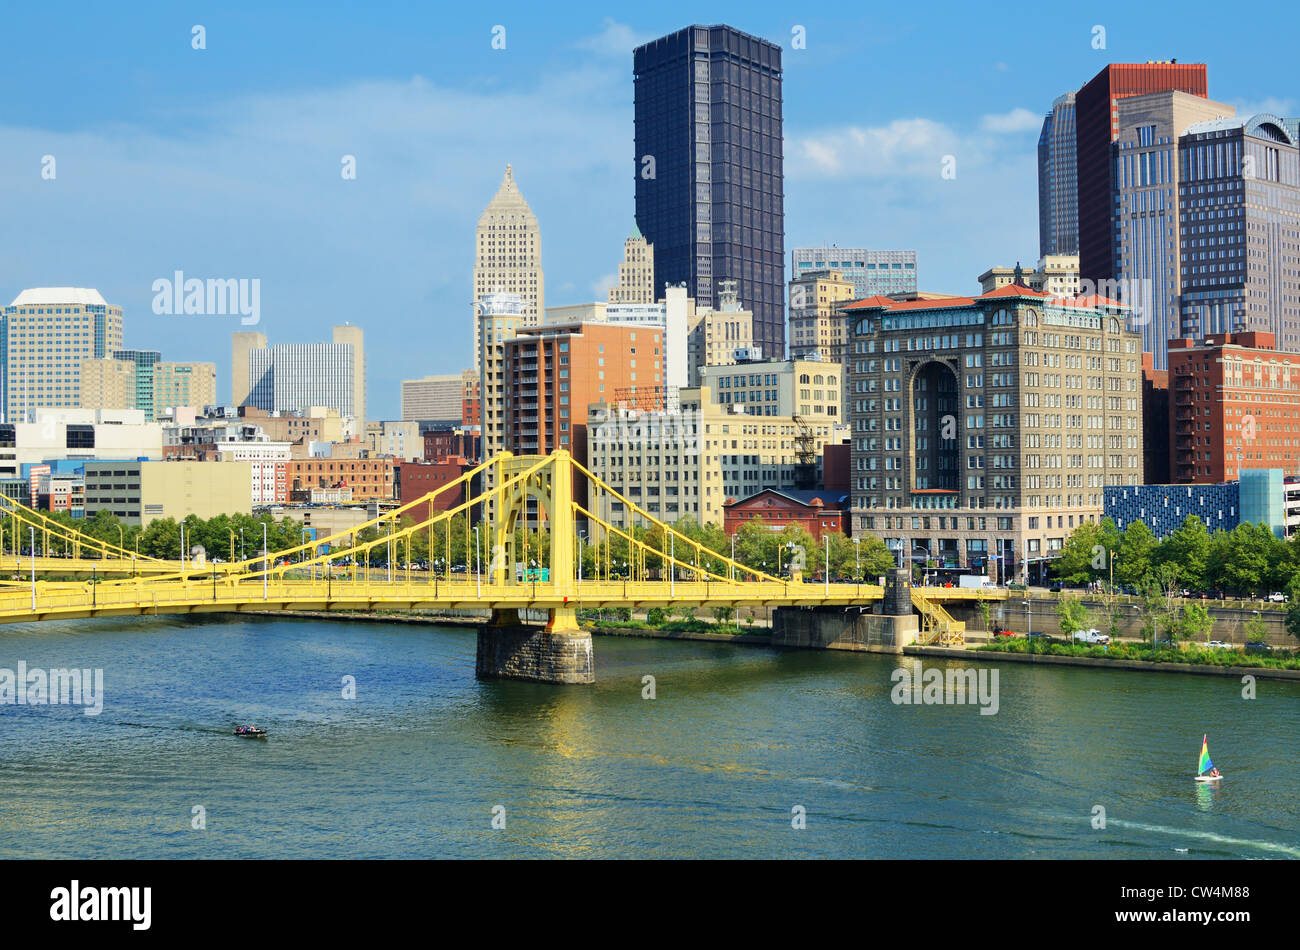 Roberto Clemente Bridge and skyscrapers in downtown Pittsburgh, Pennsylvania, USA. - Stock Image